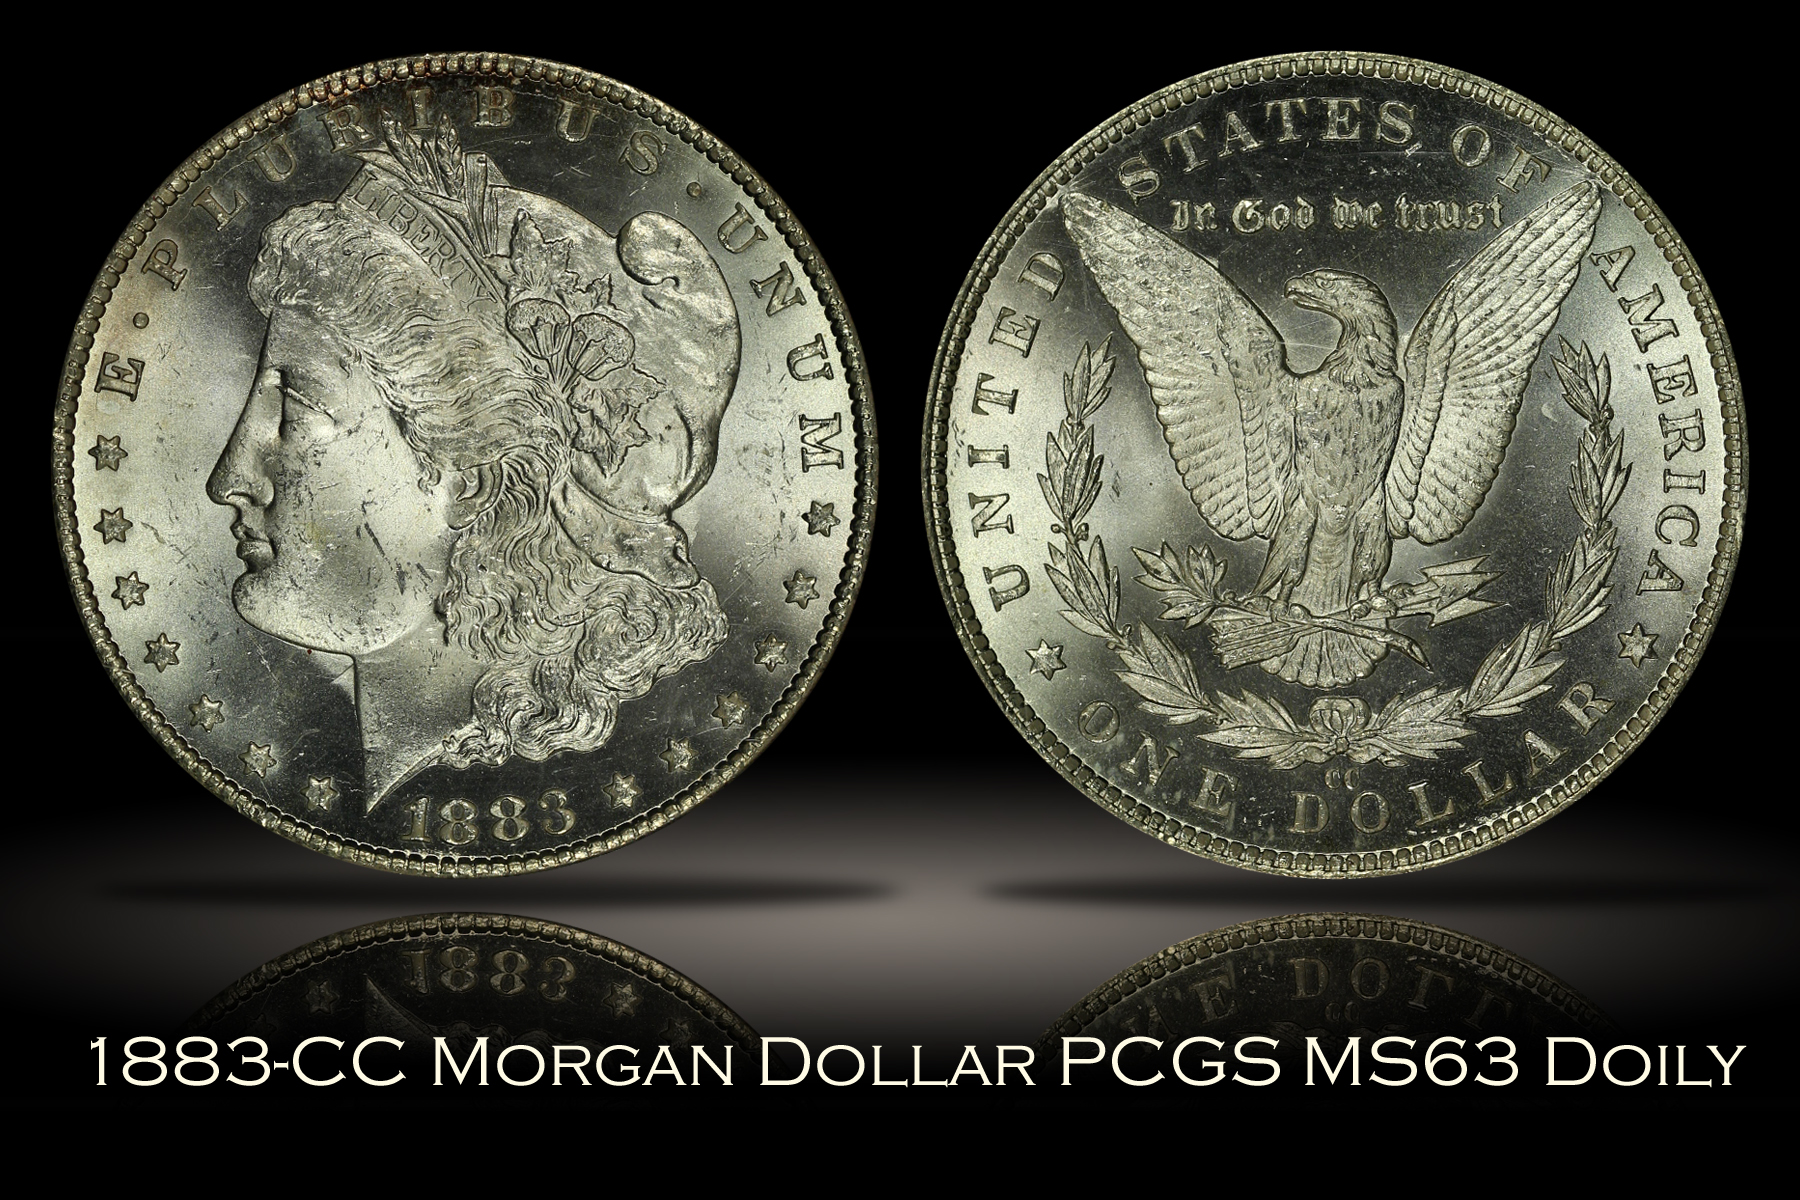 1883-CC Morgan Dollar PCGS MS63 DOILY